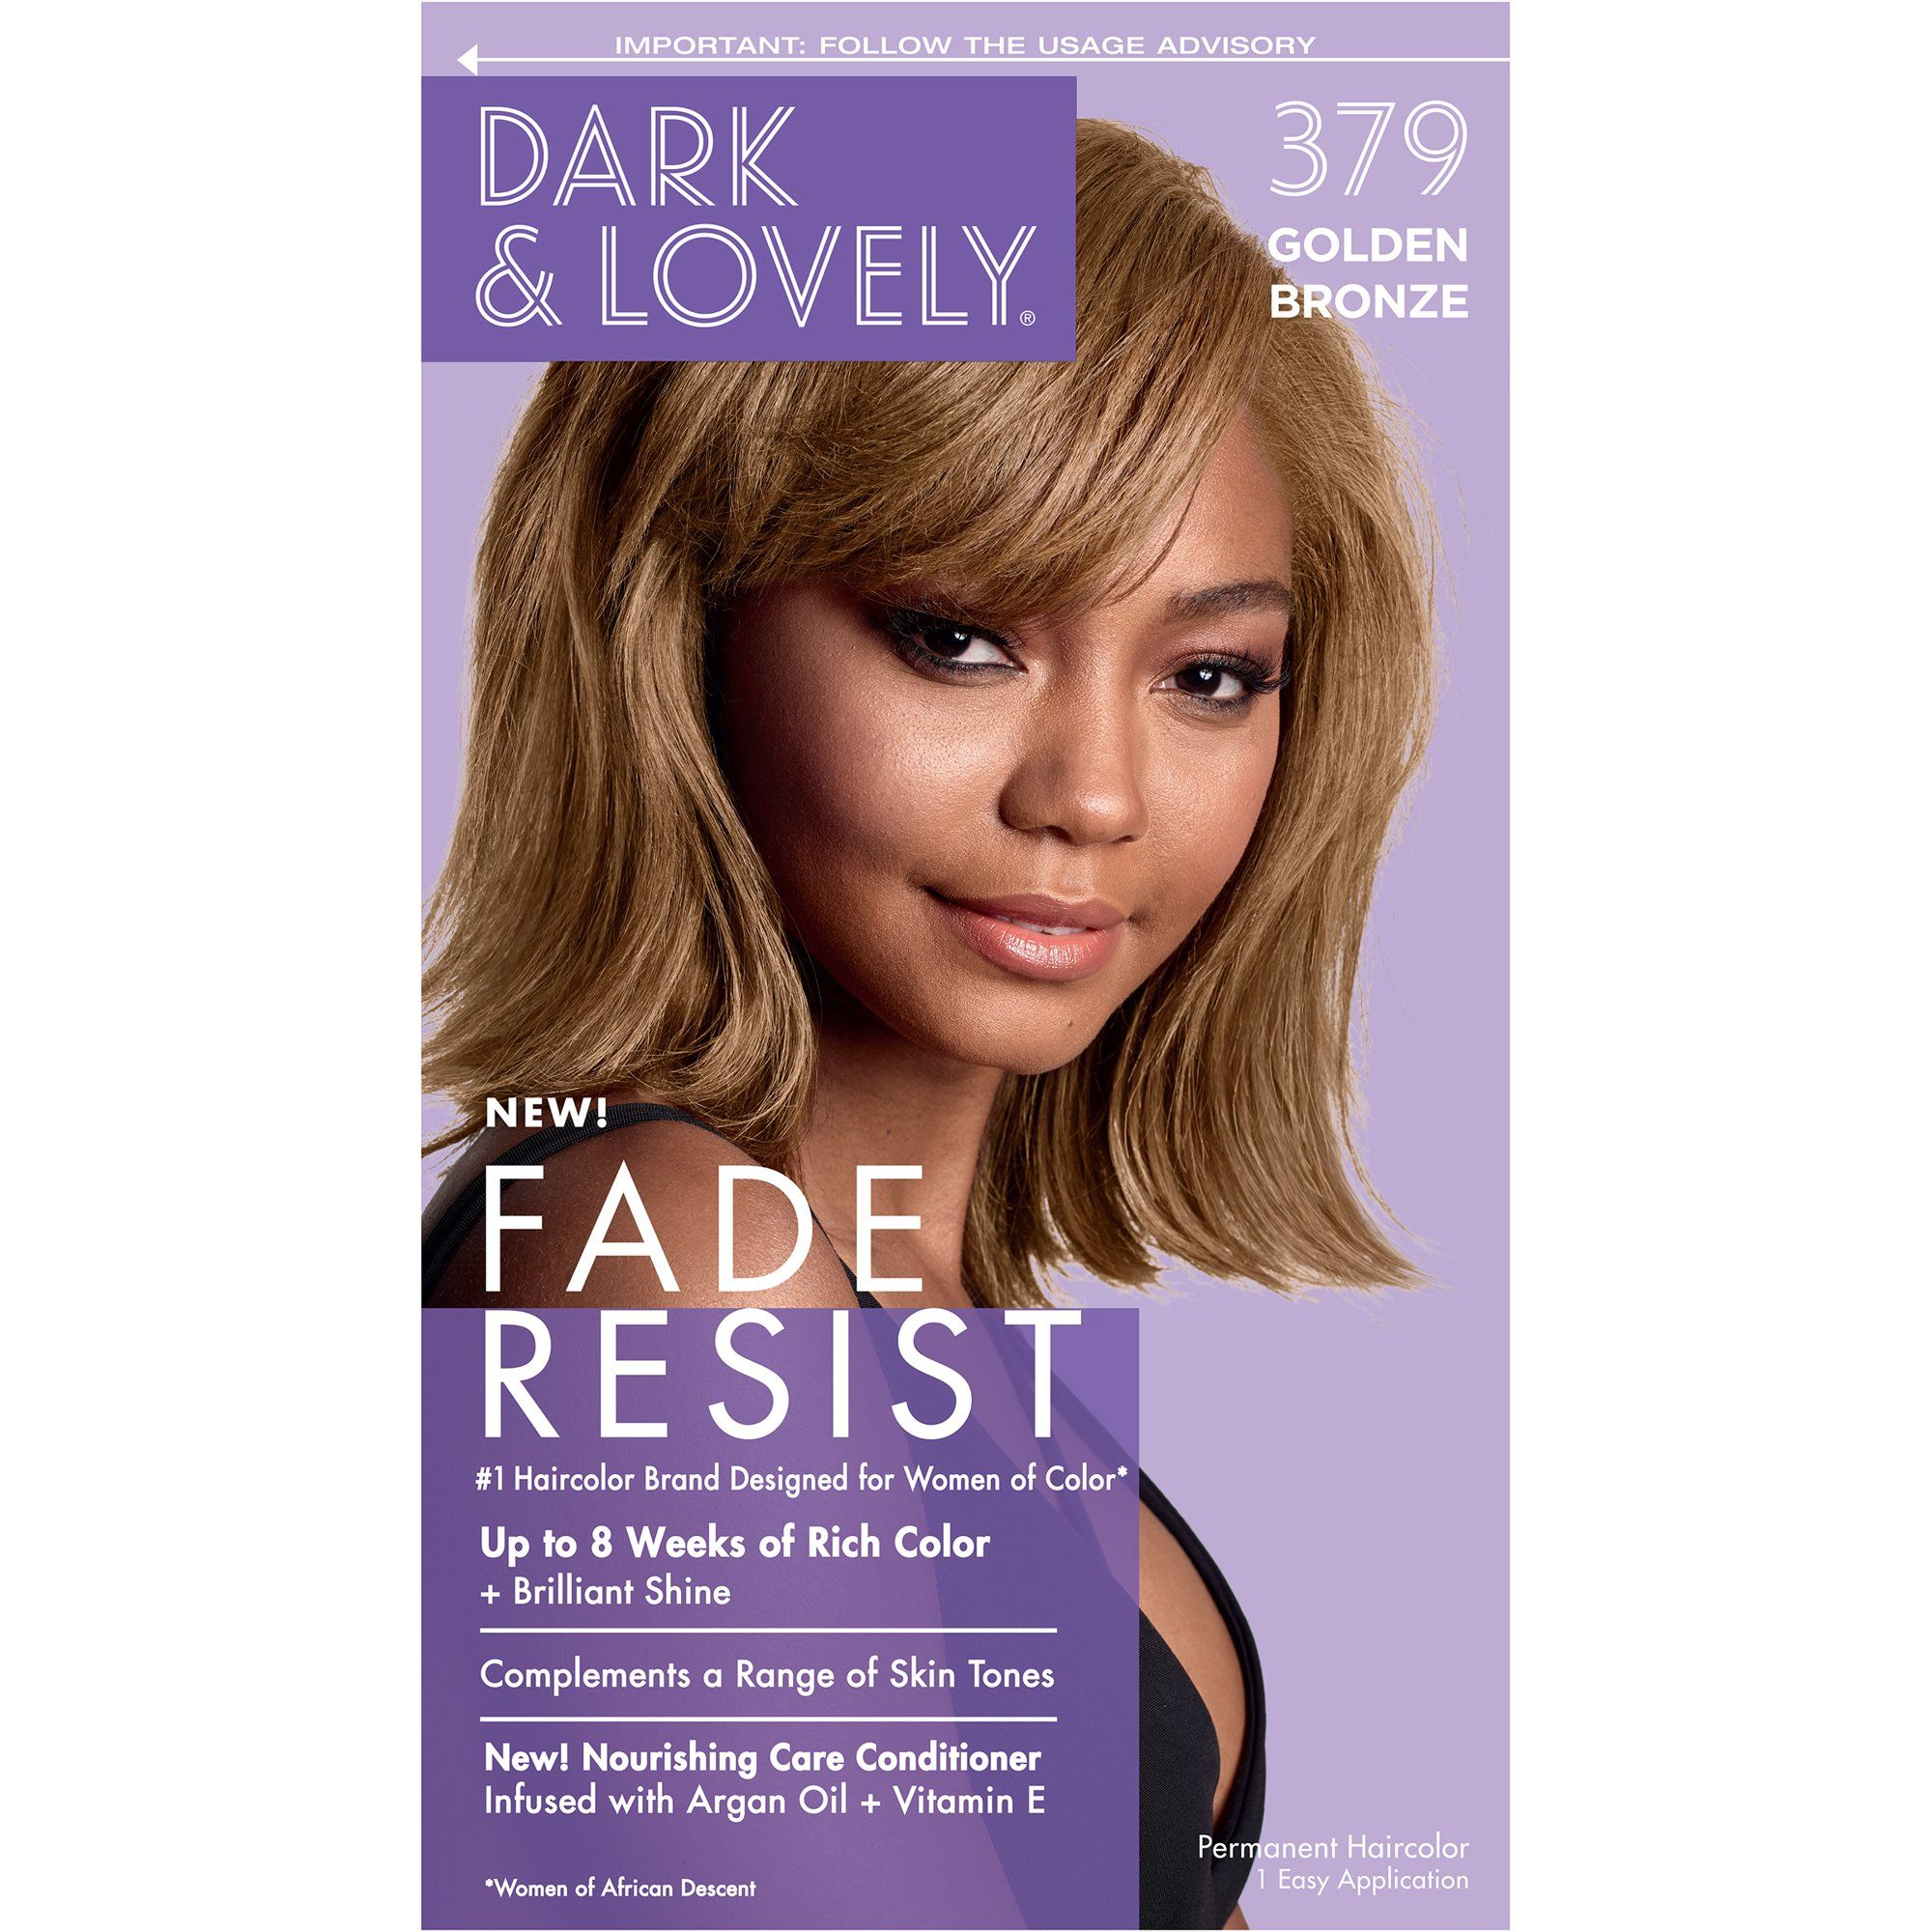 Softsheen Carson Dark And Lovely Fade Resist Rich Conditioning Hair Color Permanent Hair Dye 377 Sunkissed Br In 2020 Hair Color Bronze Hair Color Permanent Hair Dye